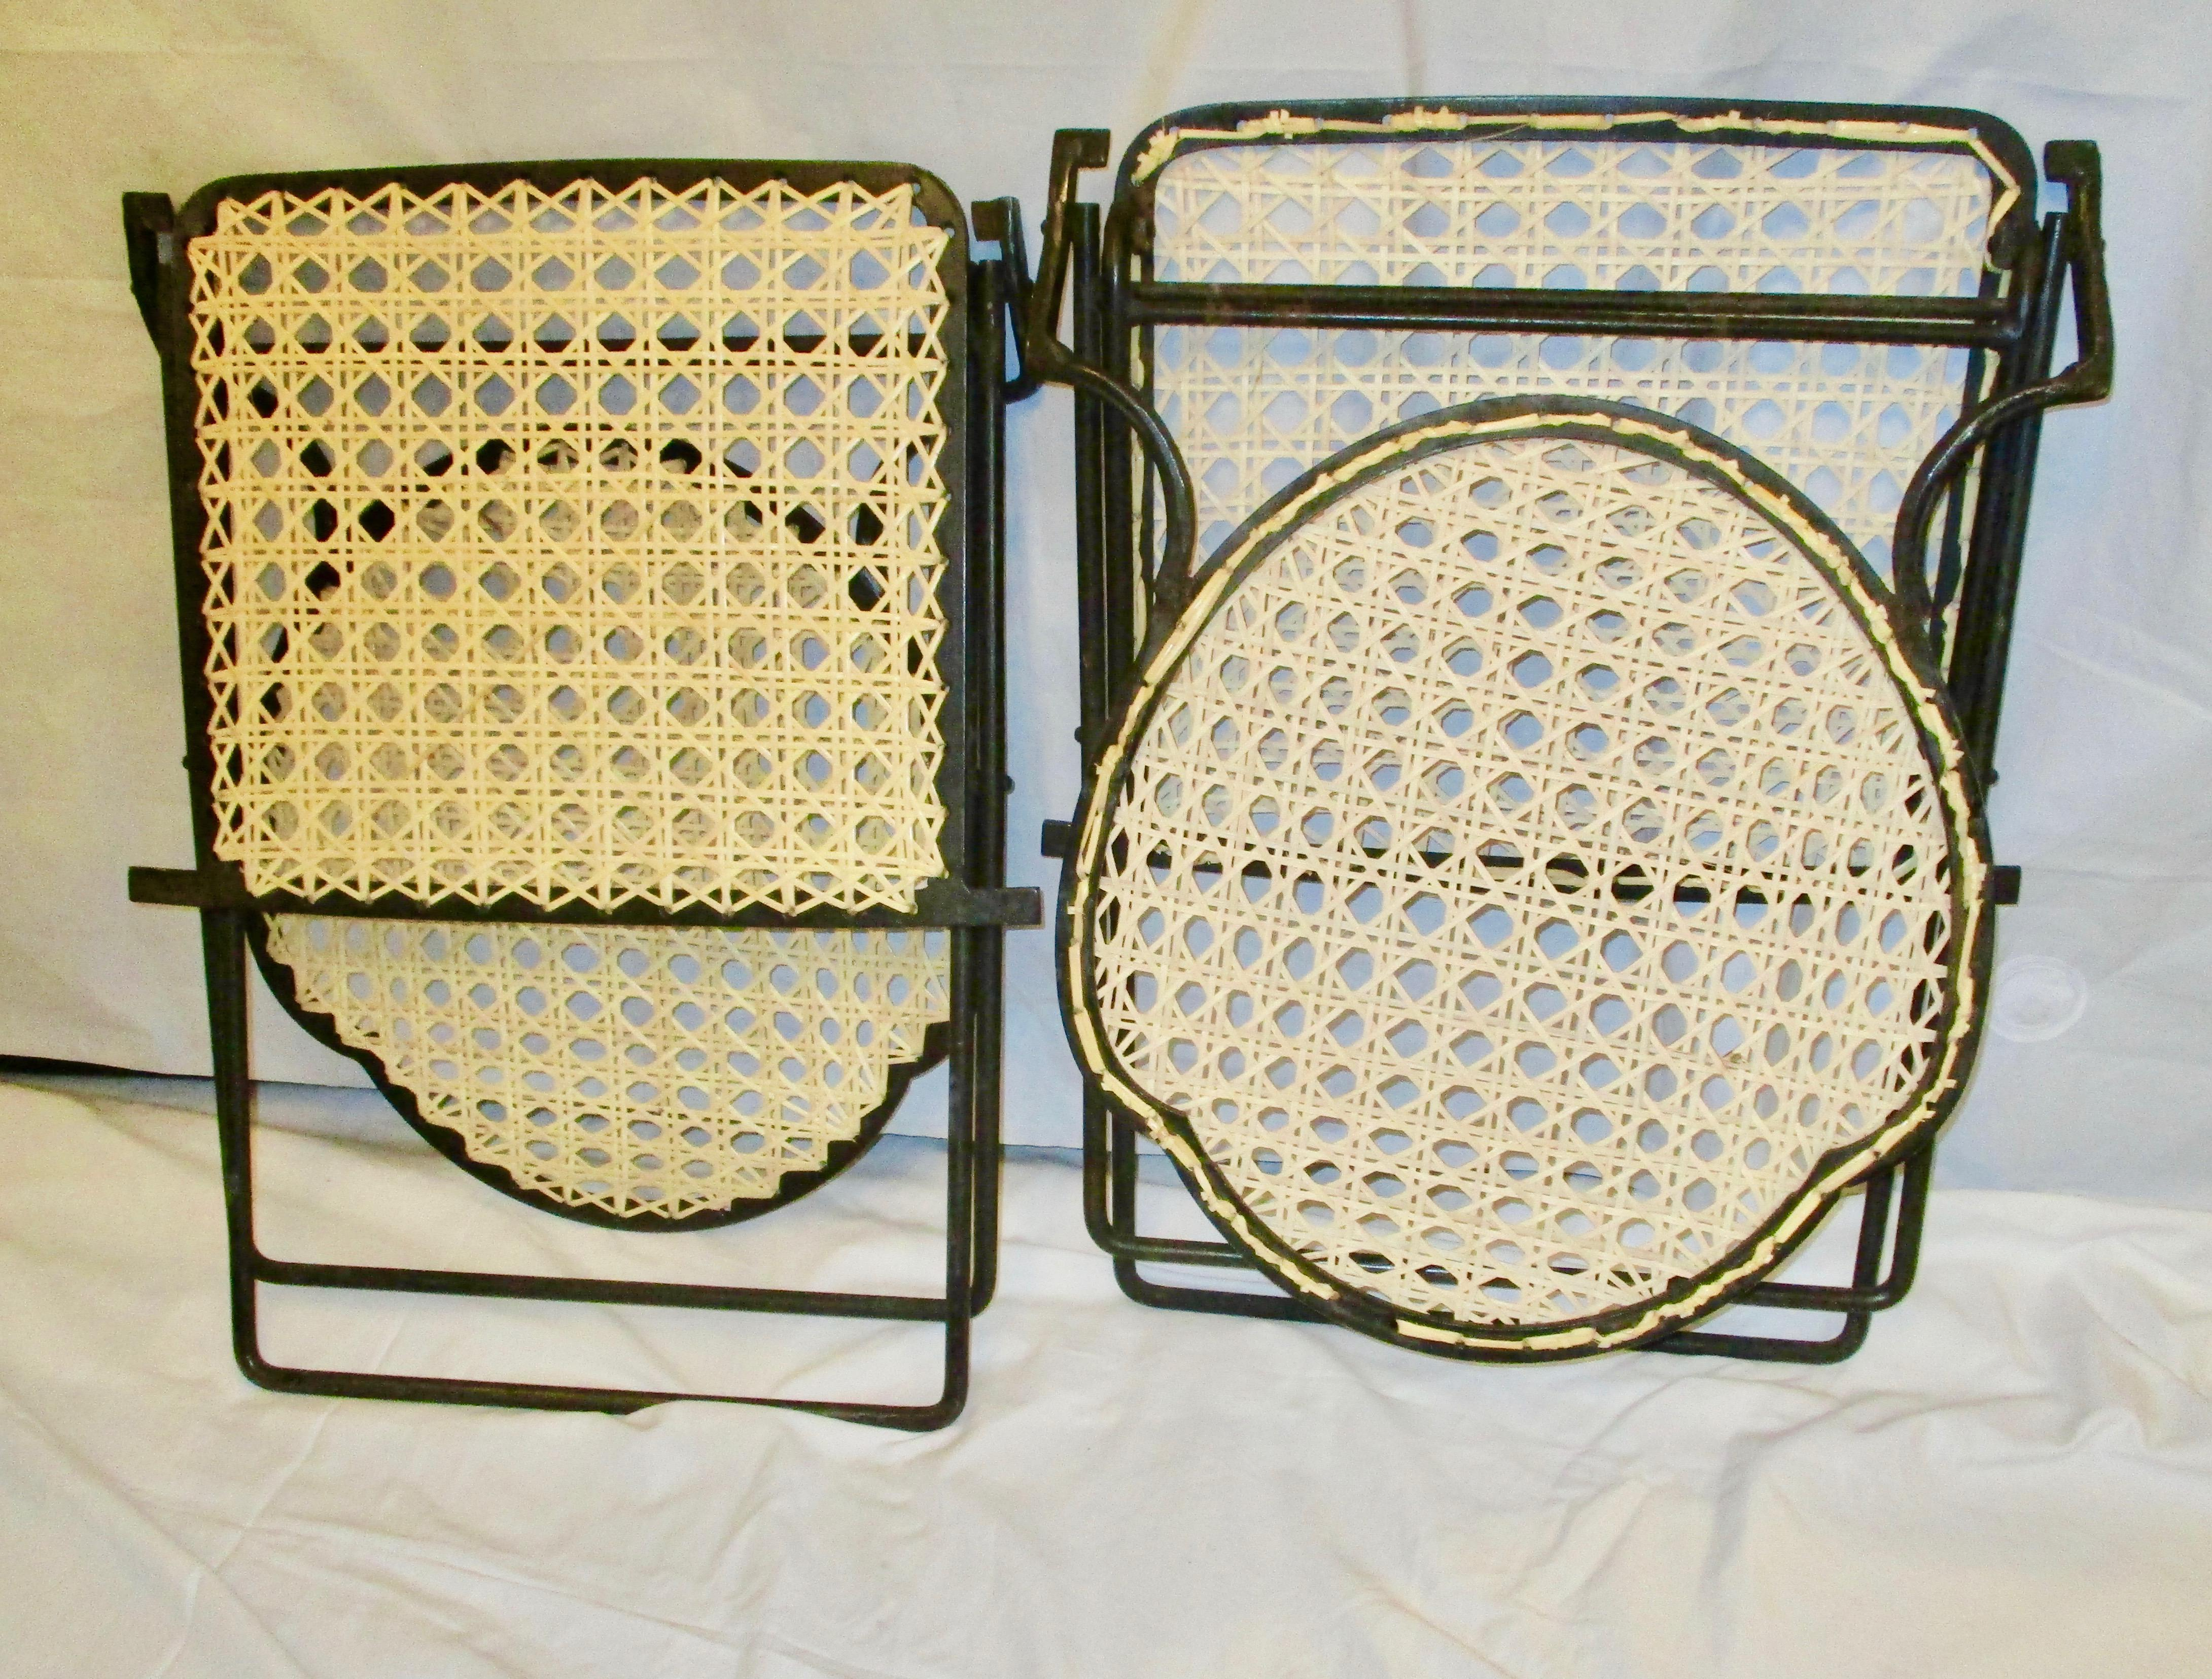 1900s Antique French Iron Cane Seat Patio Chairs   A Pair   Image 5 Of 8